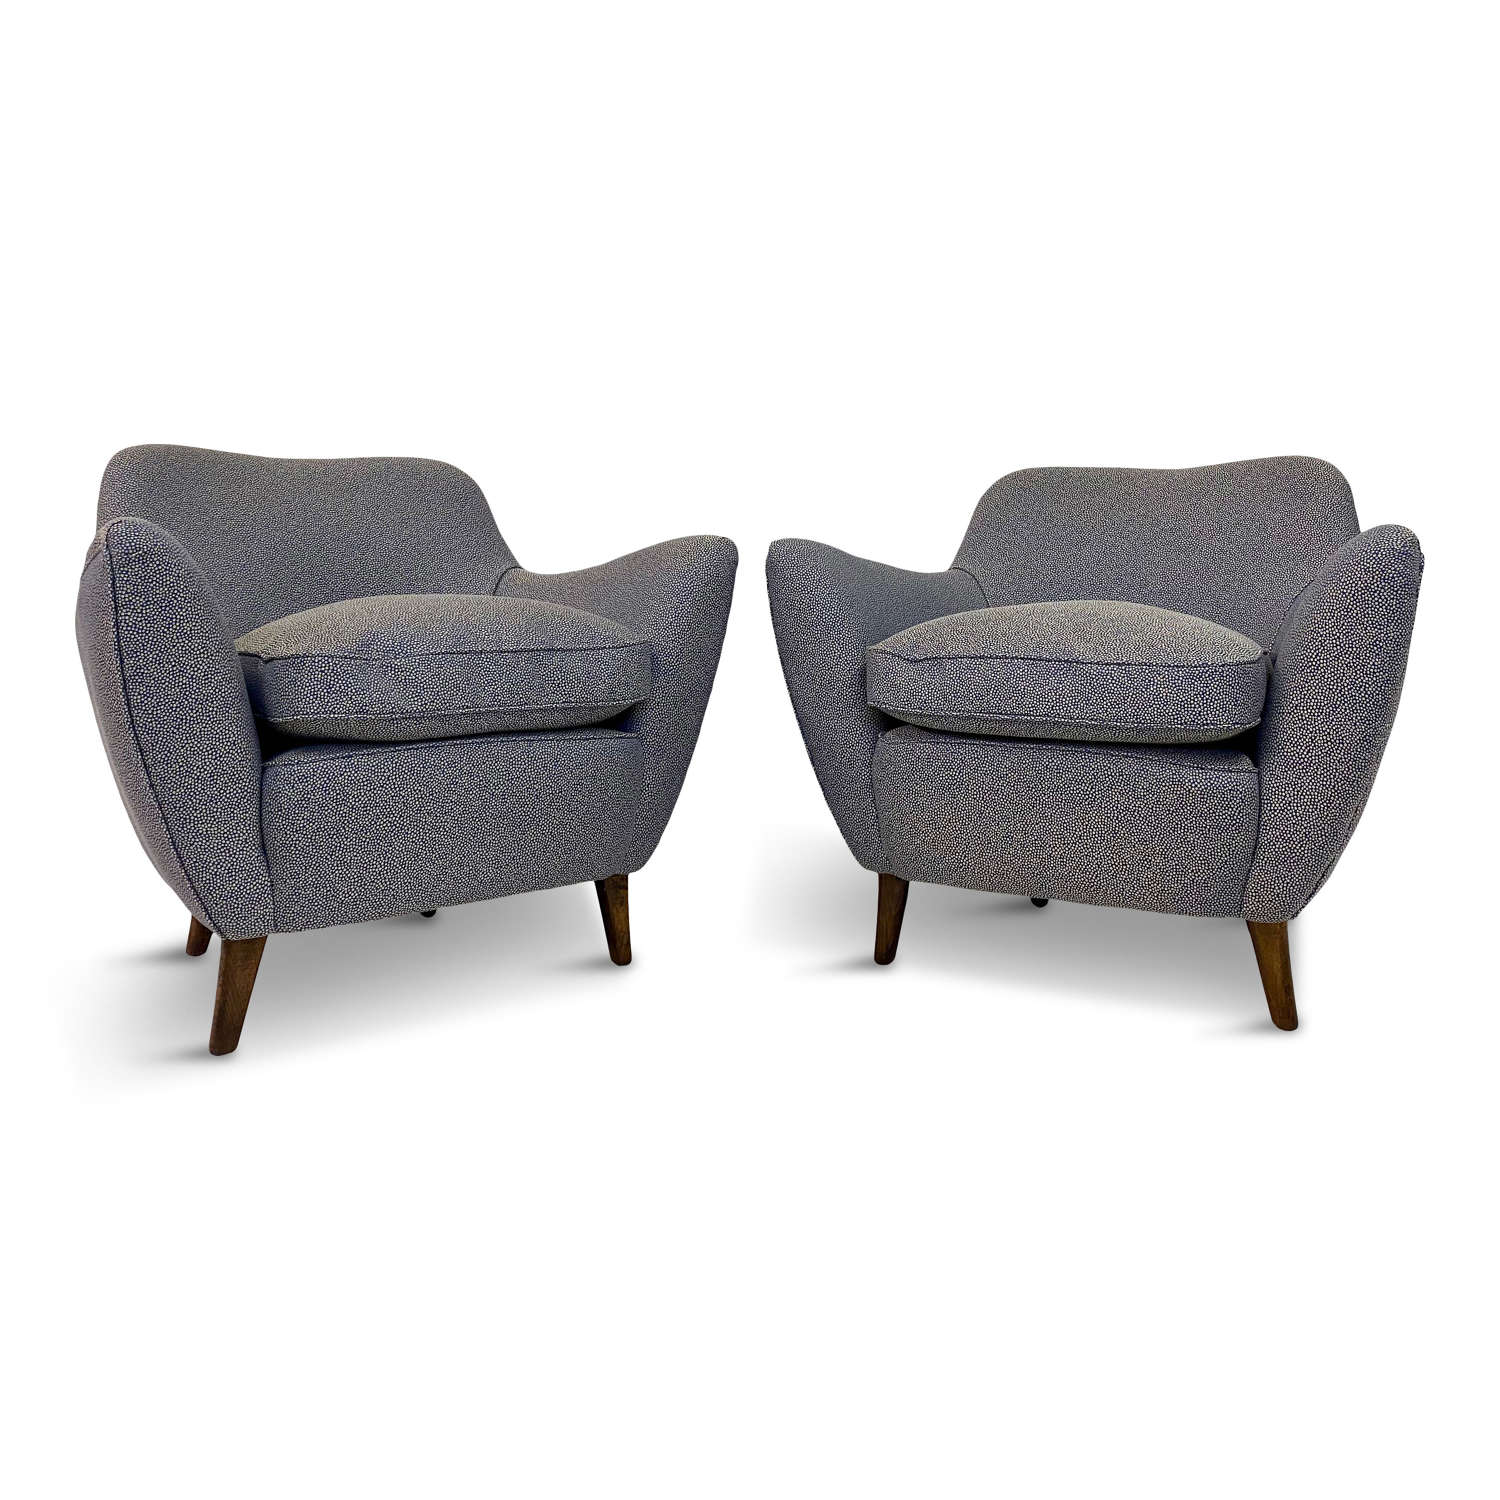 Pair of 1950s Italian Armchairs in the Style of Guglielmo Veronesi